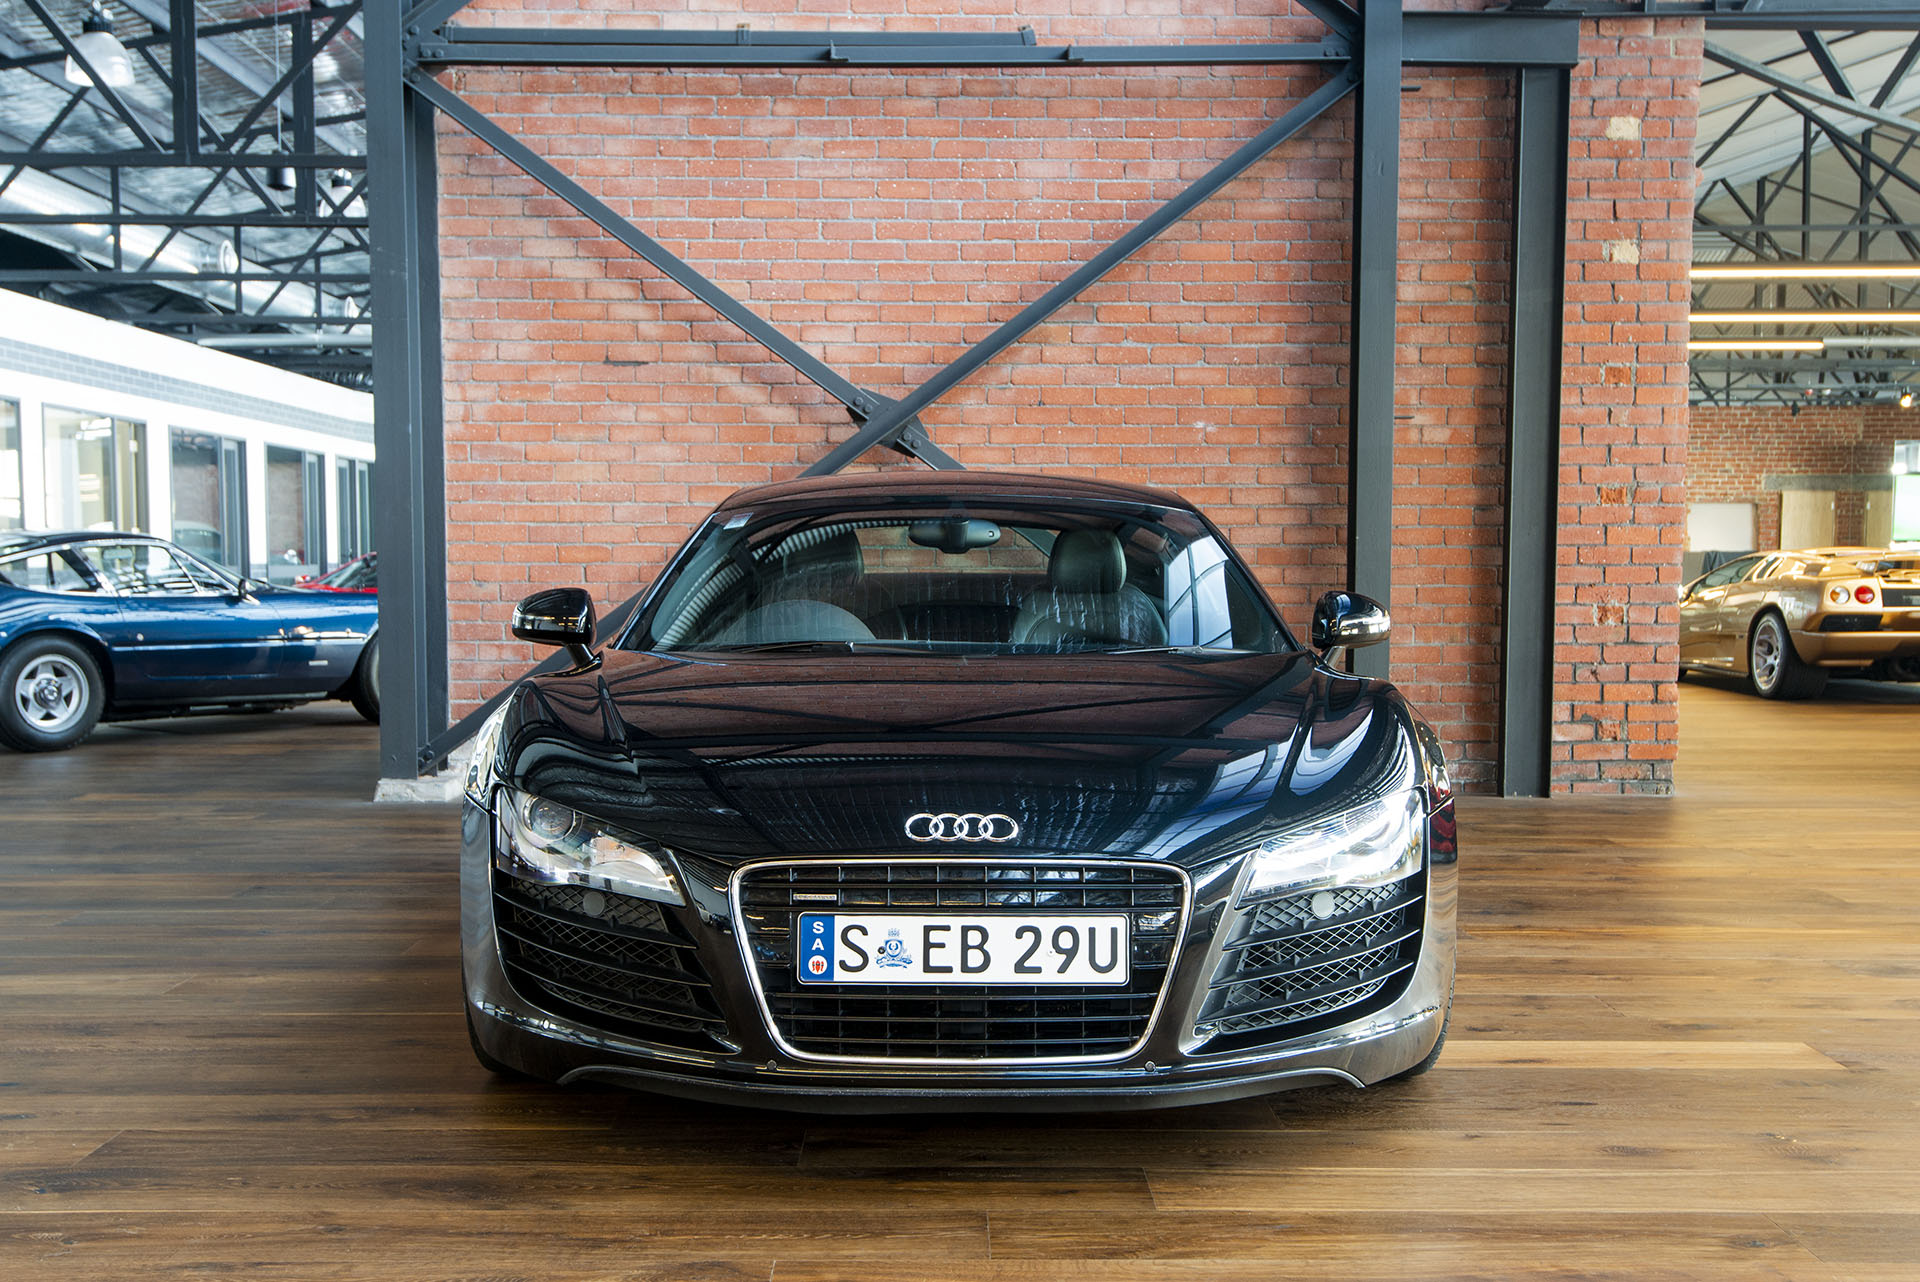 2007 audi r8 manual coupe richmonds classic and prestige cars storage and sales adelaide. Black Bedroom Furniture Sets. Home Design Ideas